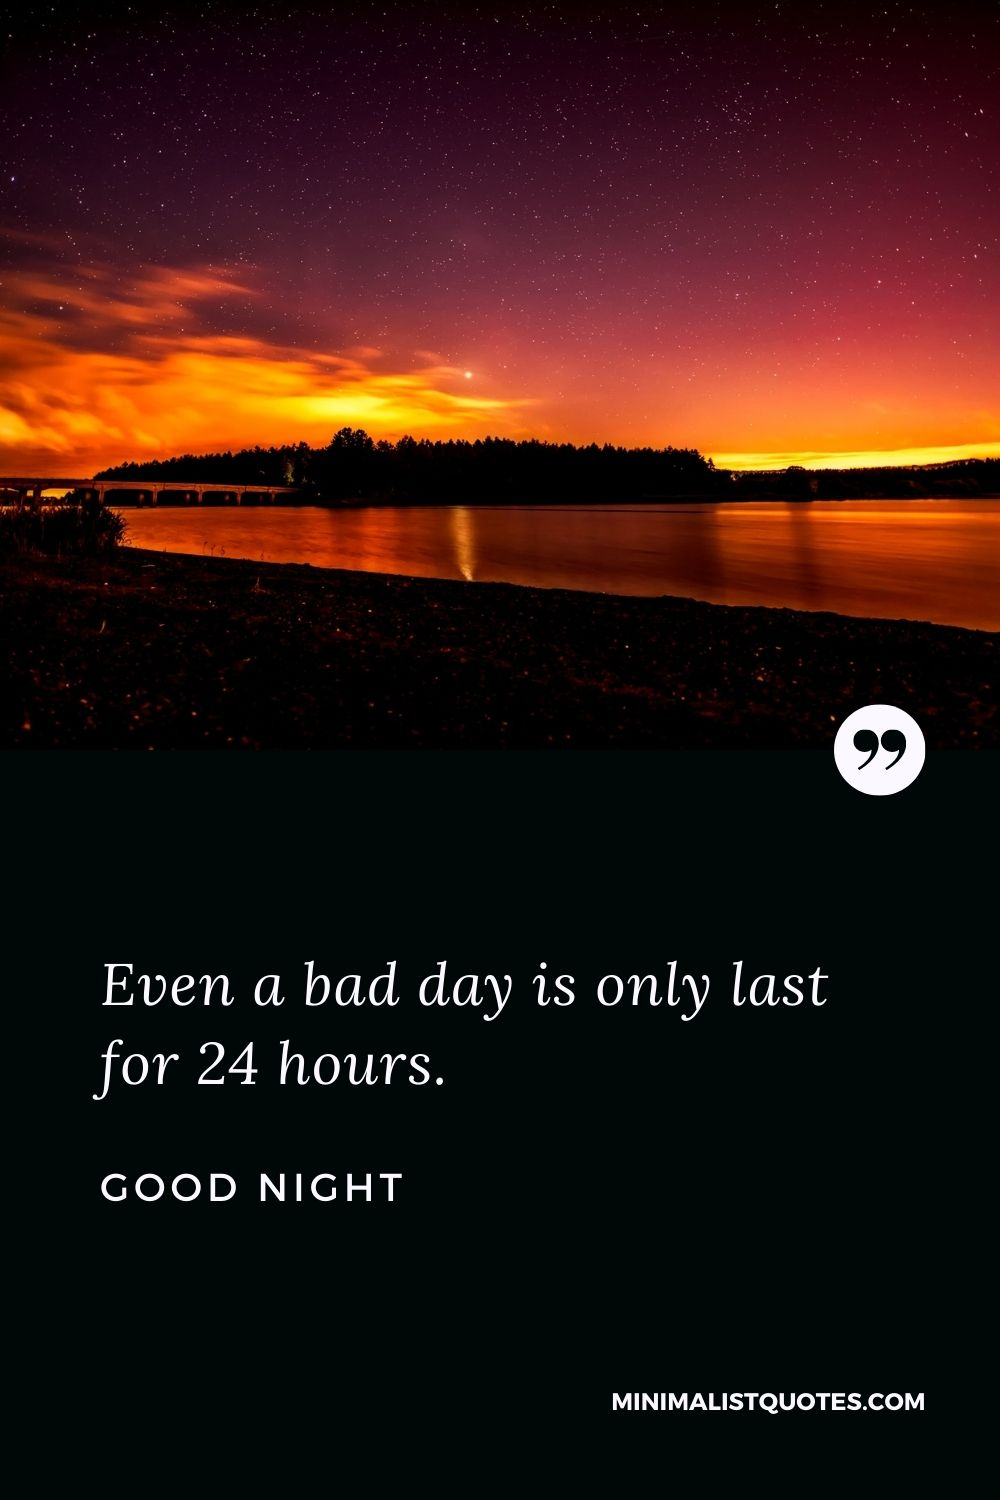 Good Night Wish & Message With Image: Even a bad day is only last for 24 hours.